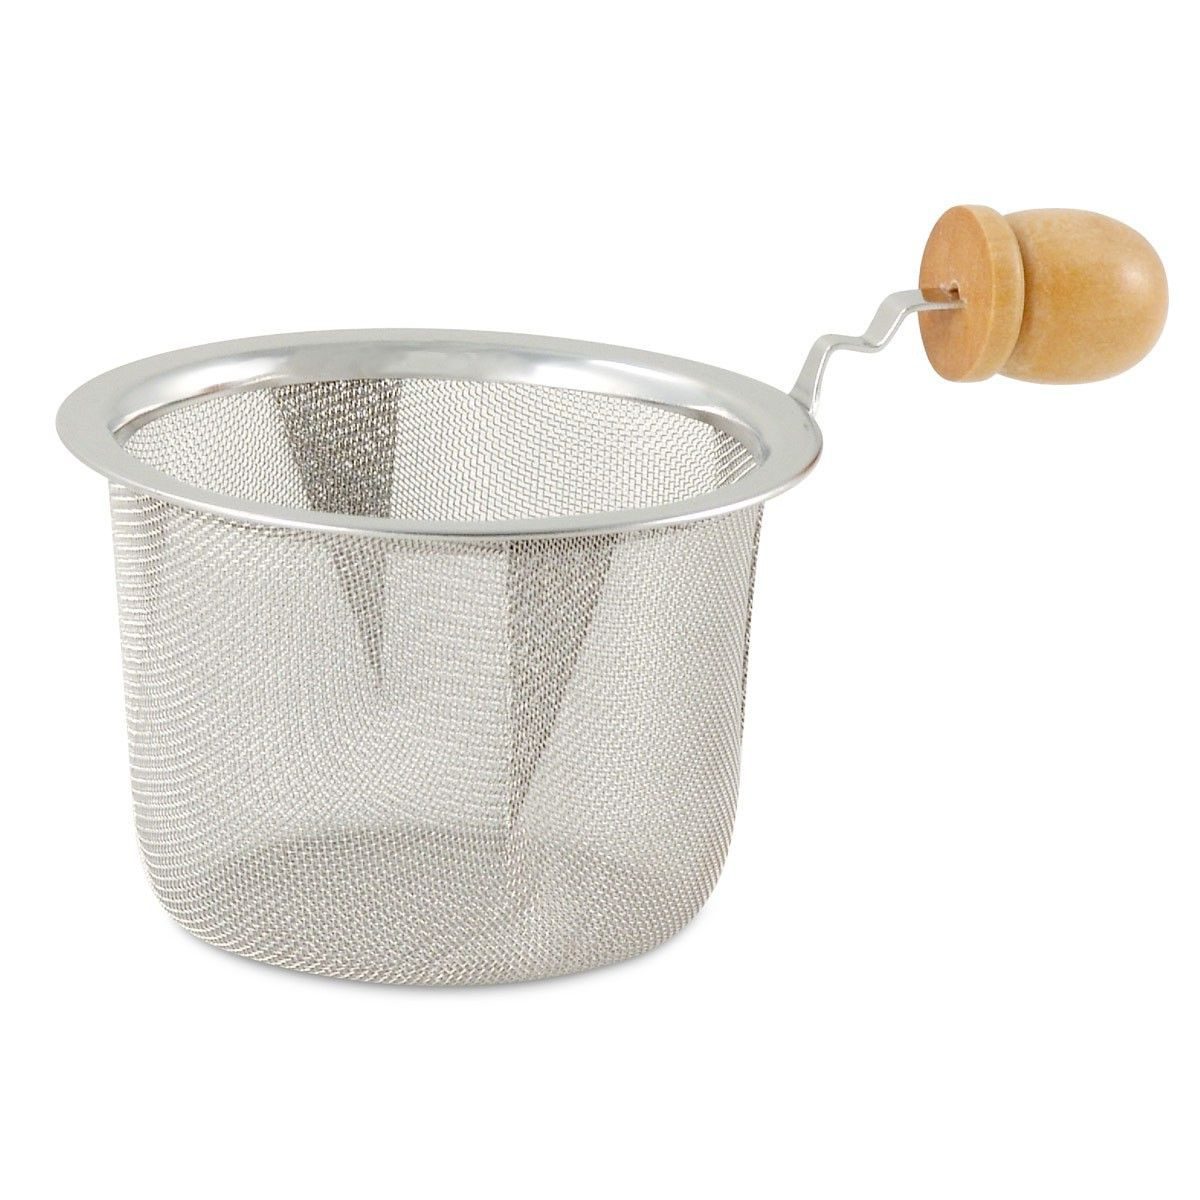 2.5in Diameter Stainless Steel Mesh Strainer with Wooden